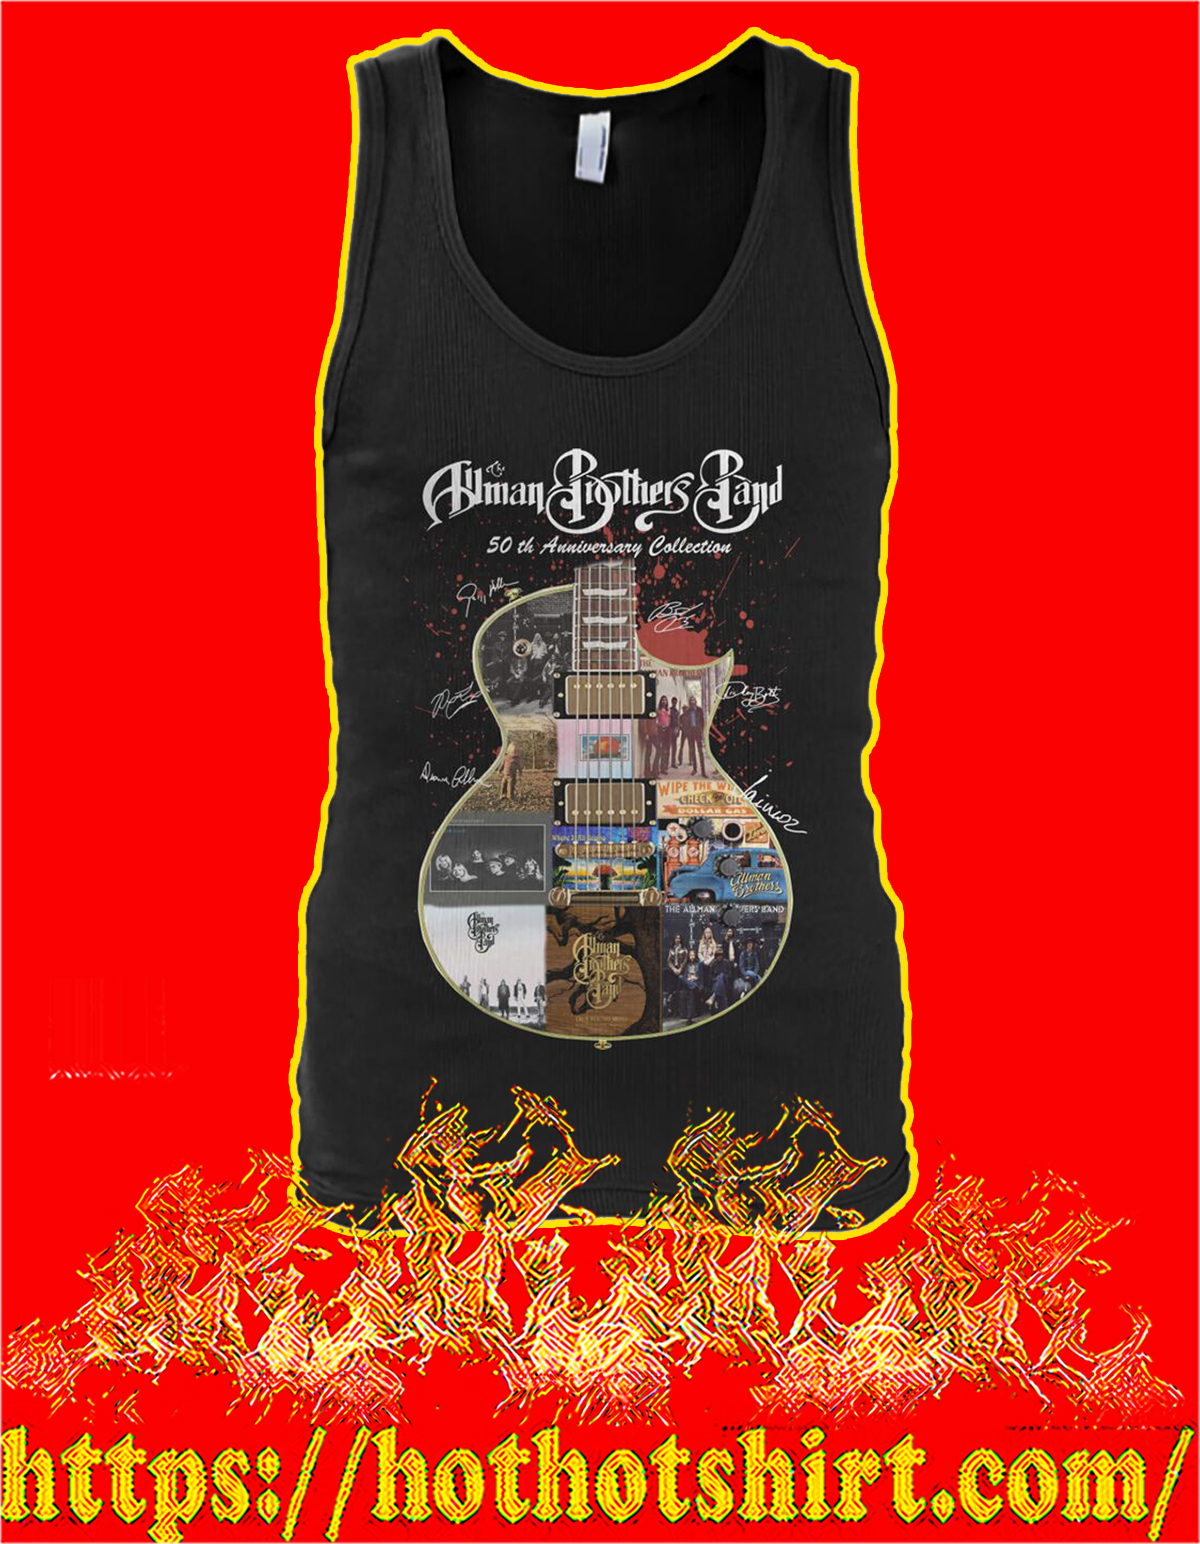 Allman brothers band 50th anniversary collection guitar signature tank top